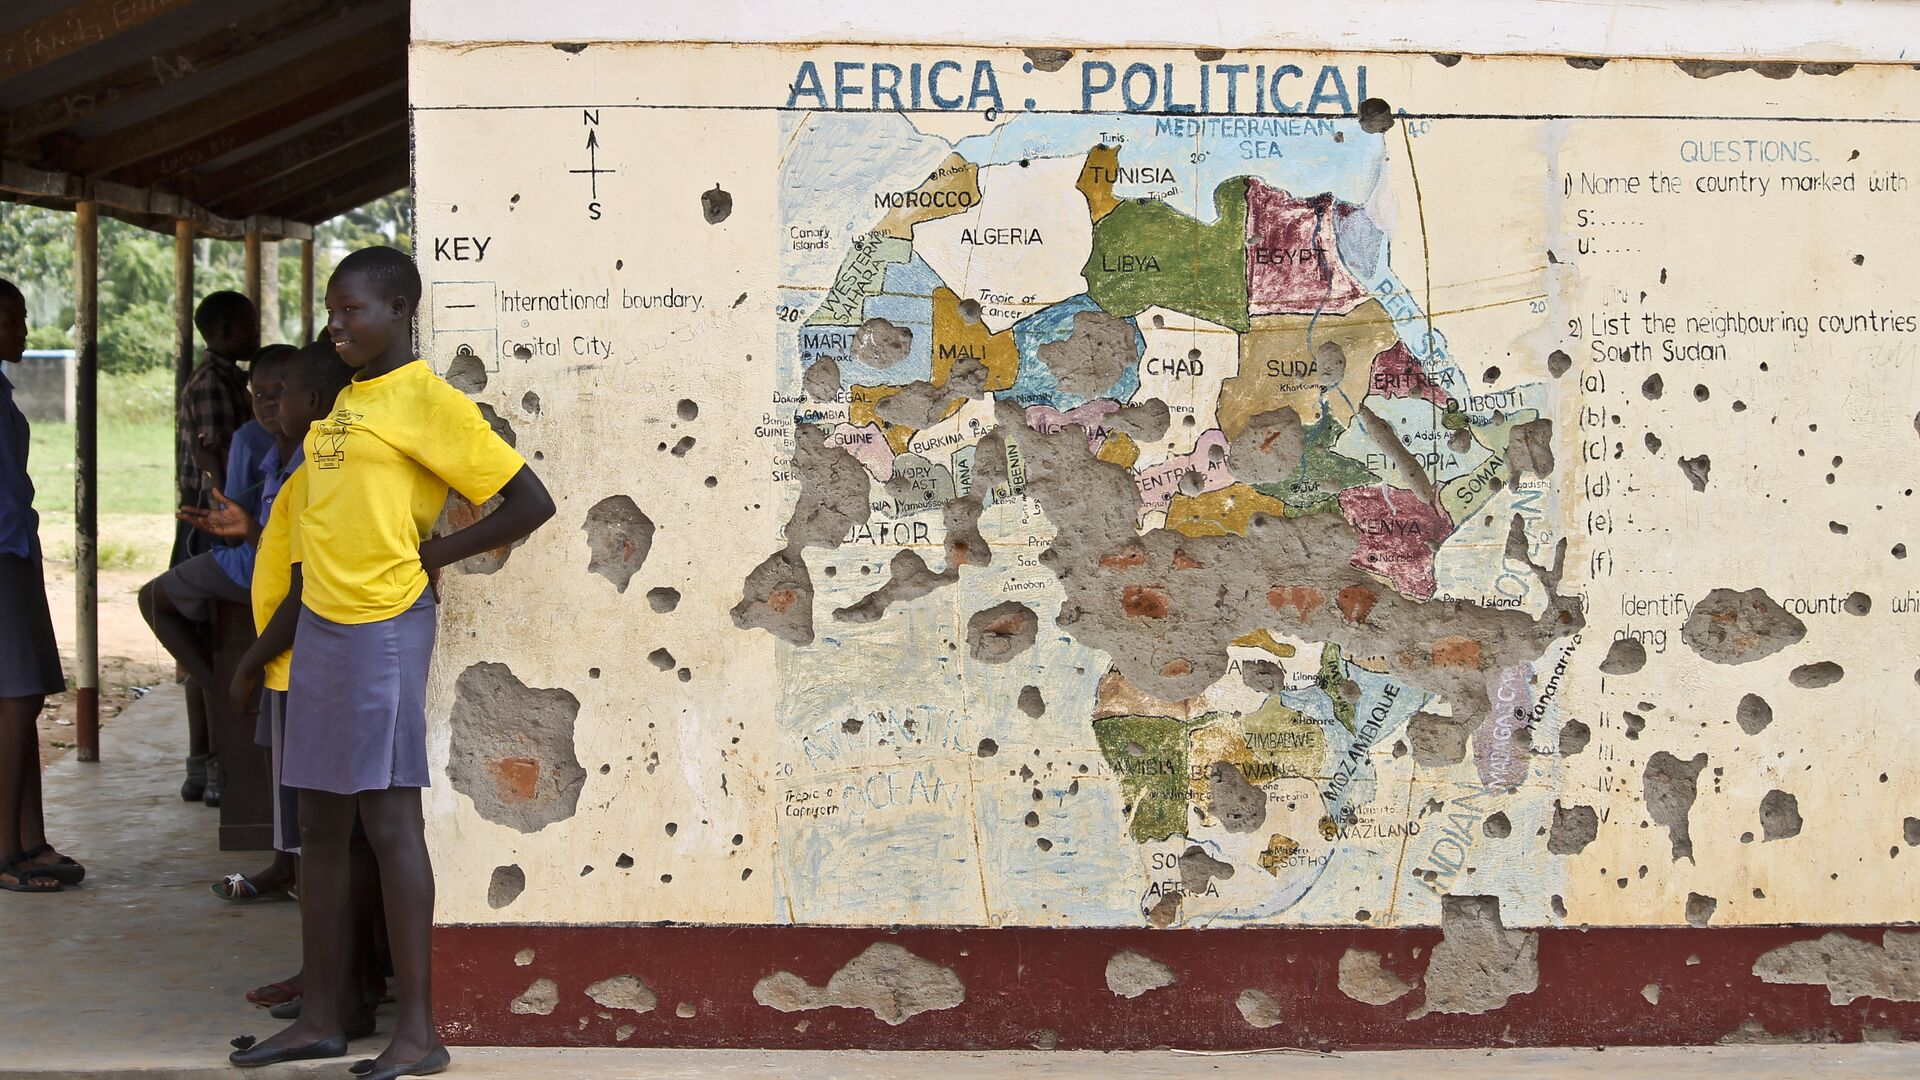 Students line up outside a classroom with a map of Africa on its wall, in Yei, in southern South Sudan (File) - Sputnik Italia, 1920, 27.05.2021